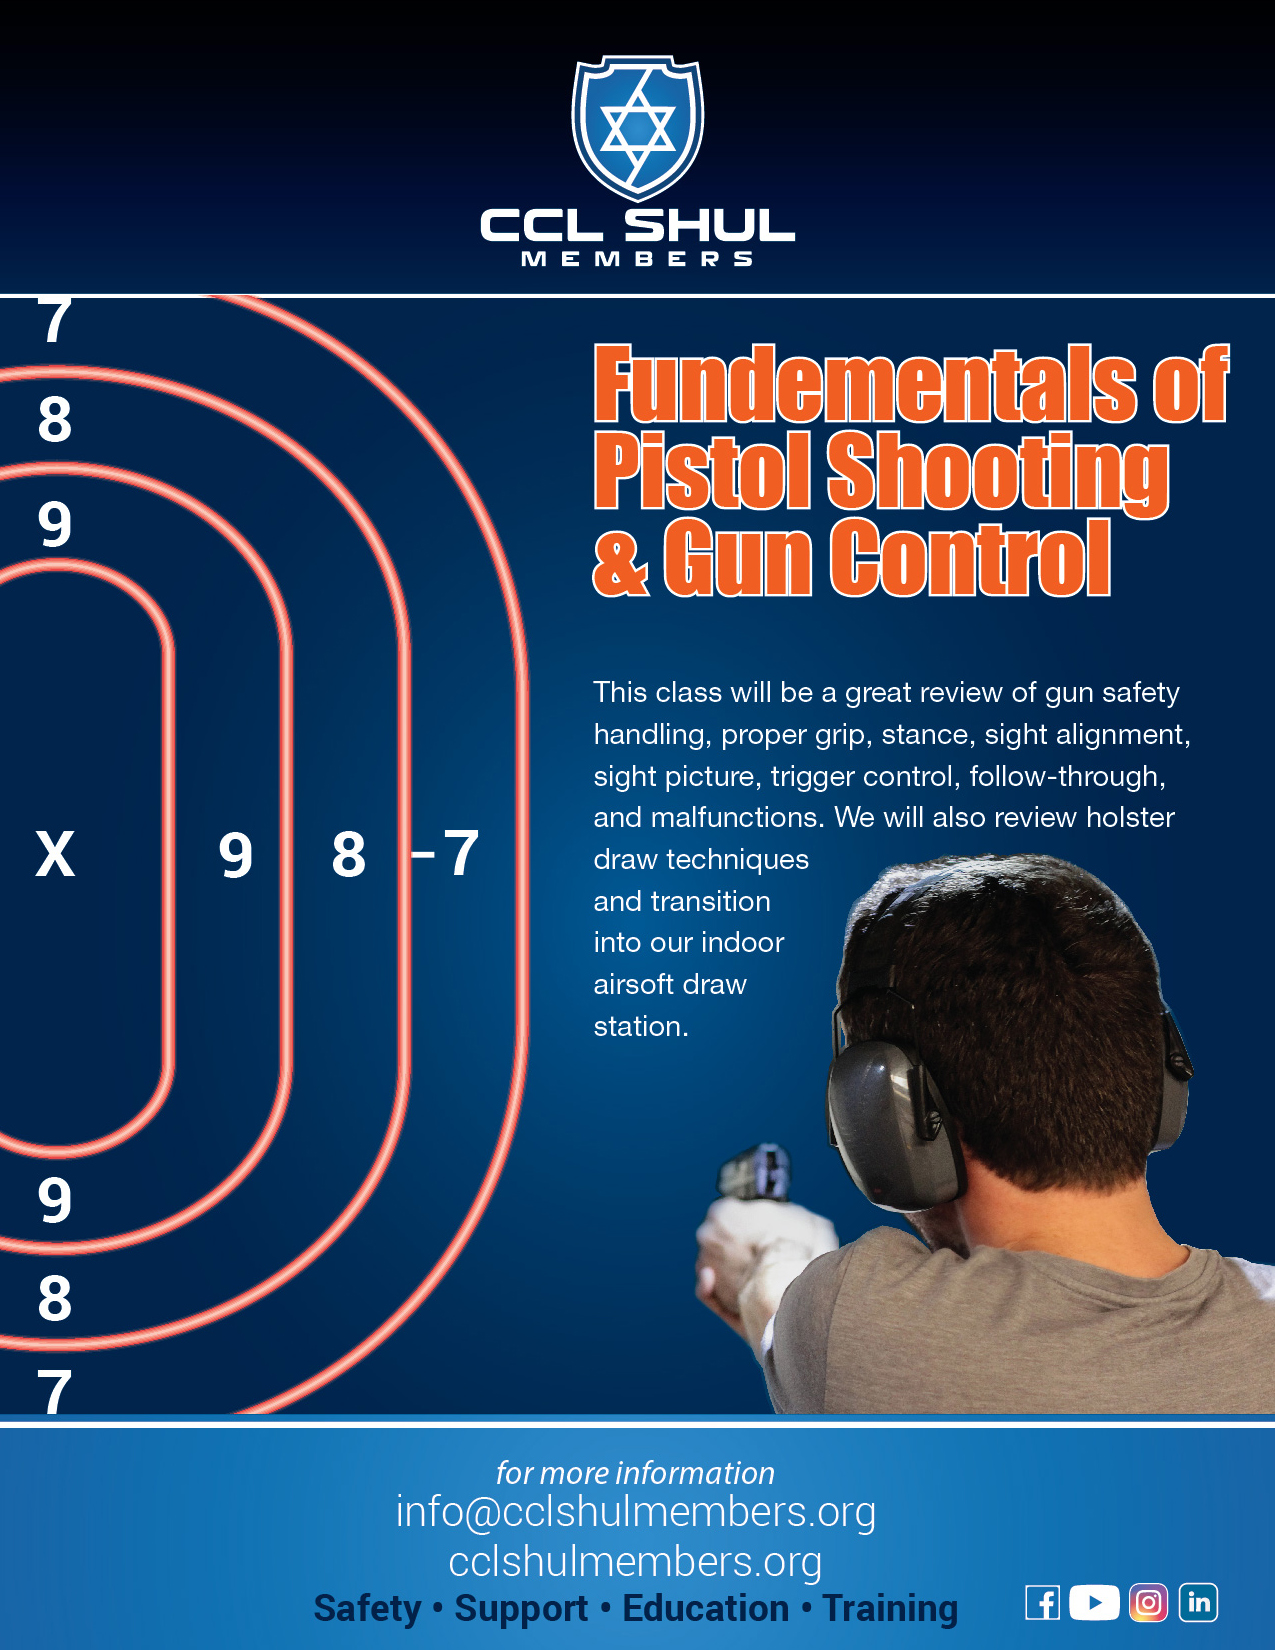 Fundamentals of Pistol Shootings and Gun Control